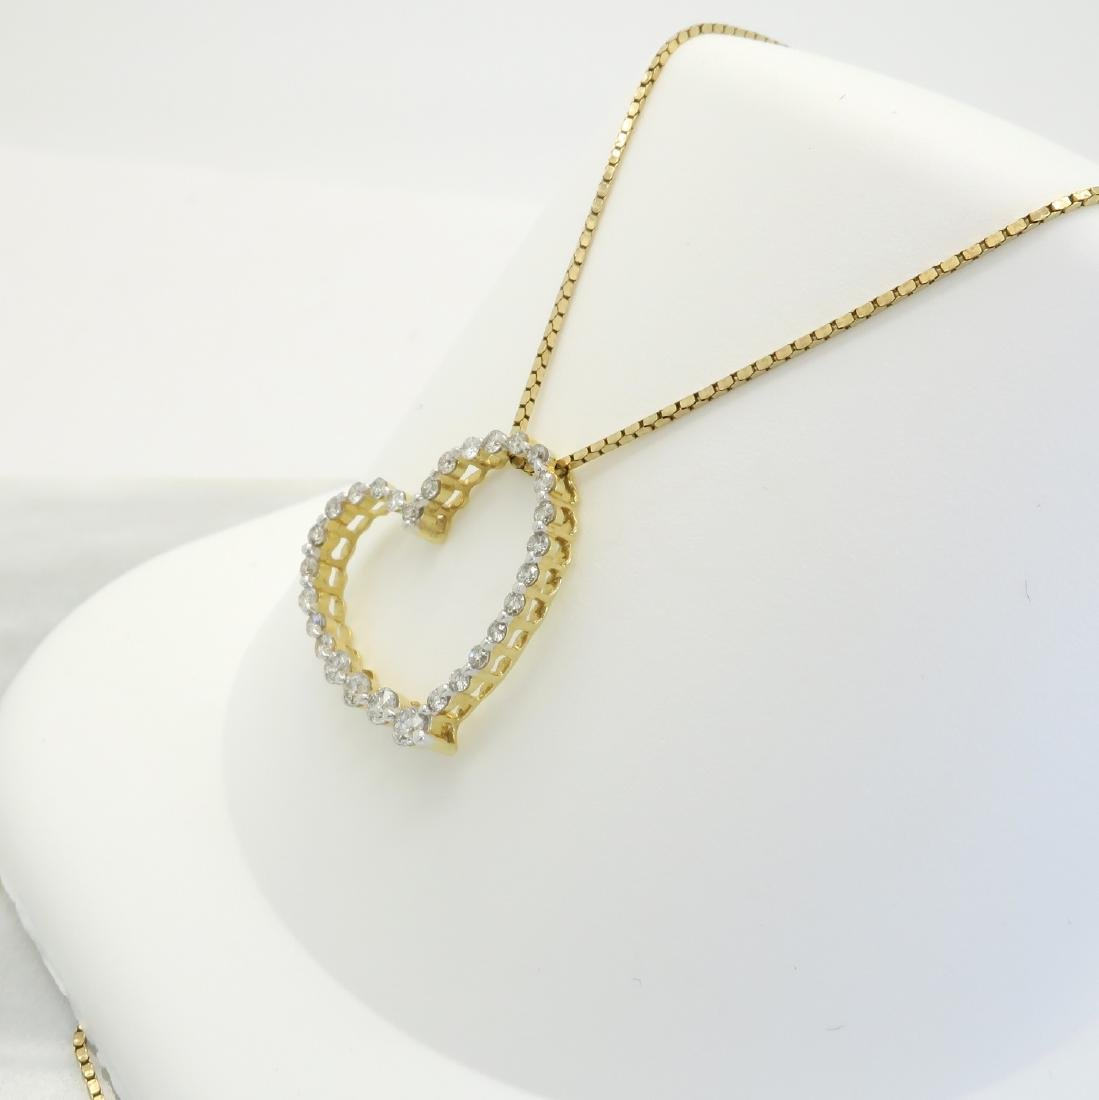 14KT Yellow Gold 0.50ctw Diamond Pendant with Chain - 4